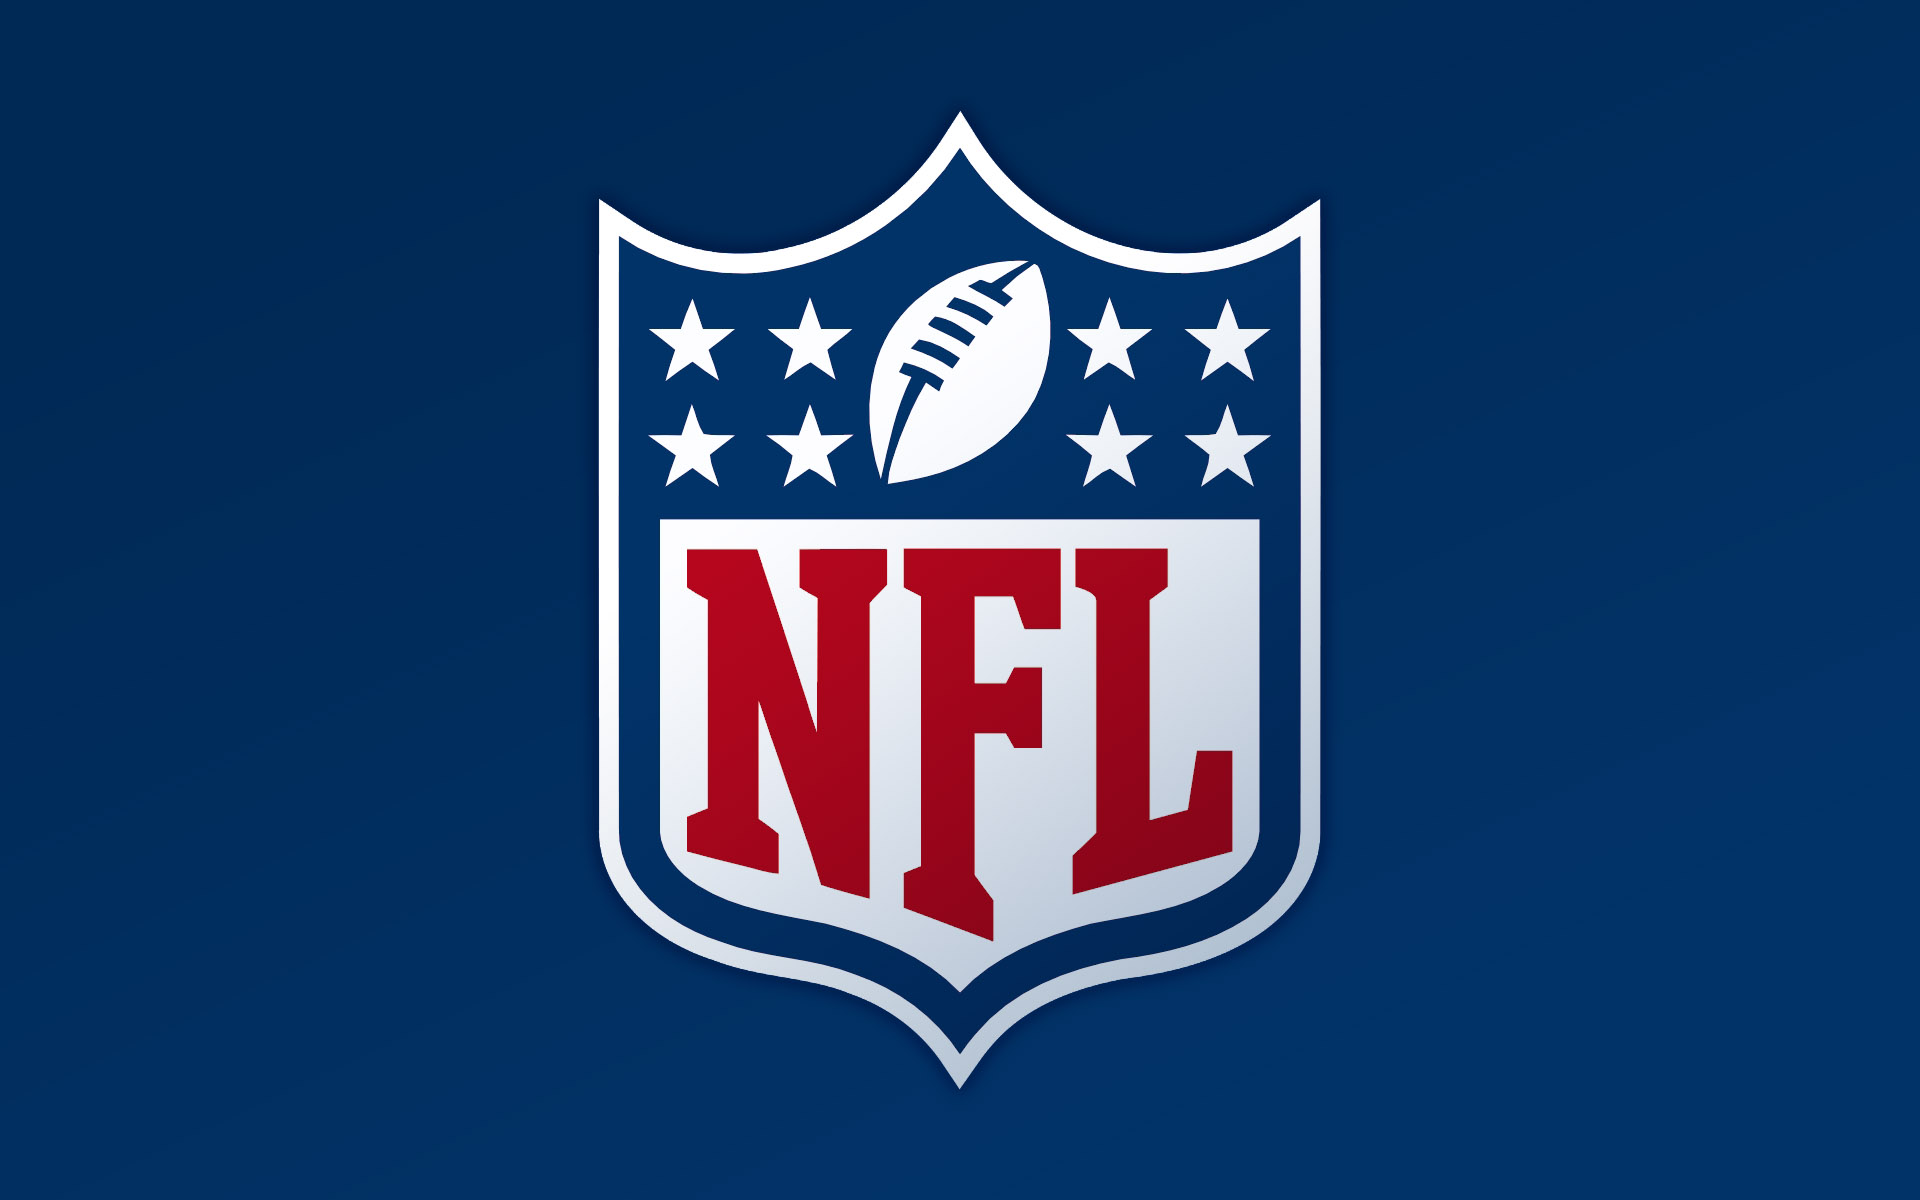 NFL Logo Wallpaper